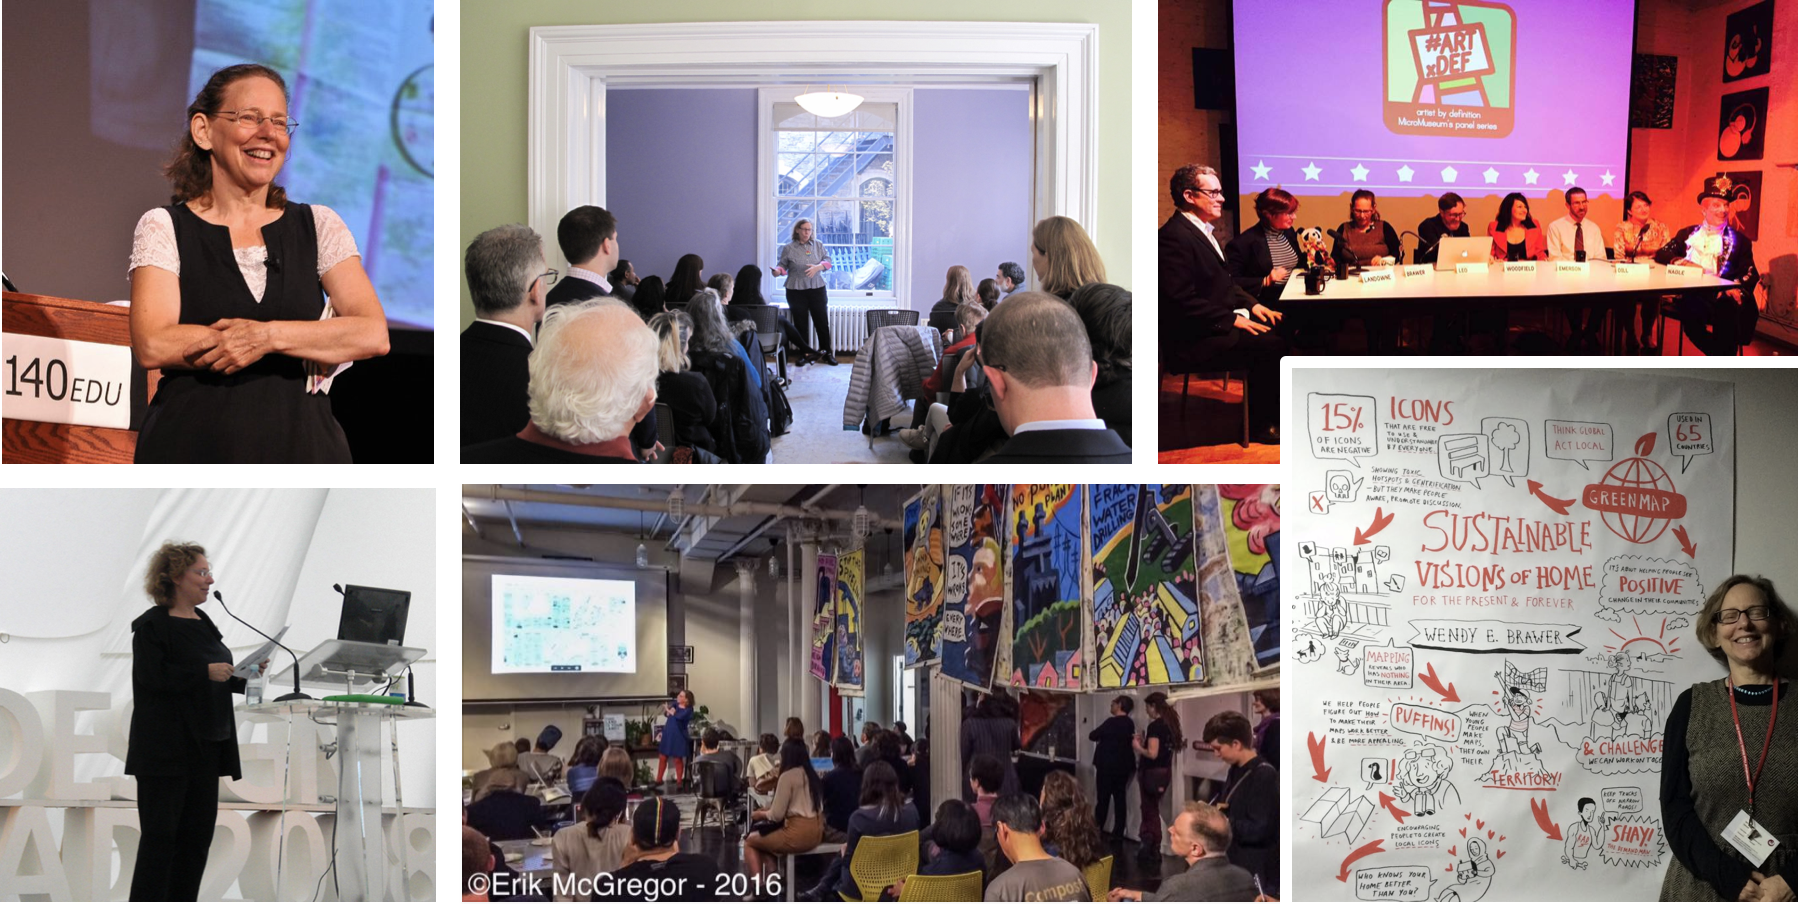 Speaking at #140edu, at Gardens Rising, at the Micro Museum, at the Seoul Design Olympiad, at Sane Energy's Radical Mapping and after keynoting at Visual Methods 4 in Brighton UK